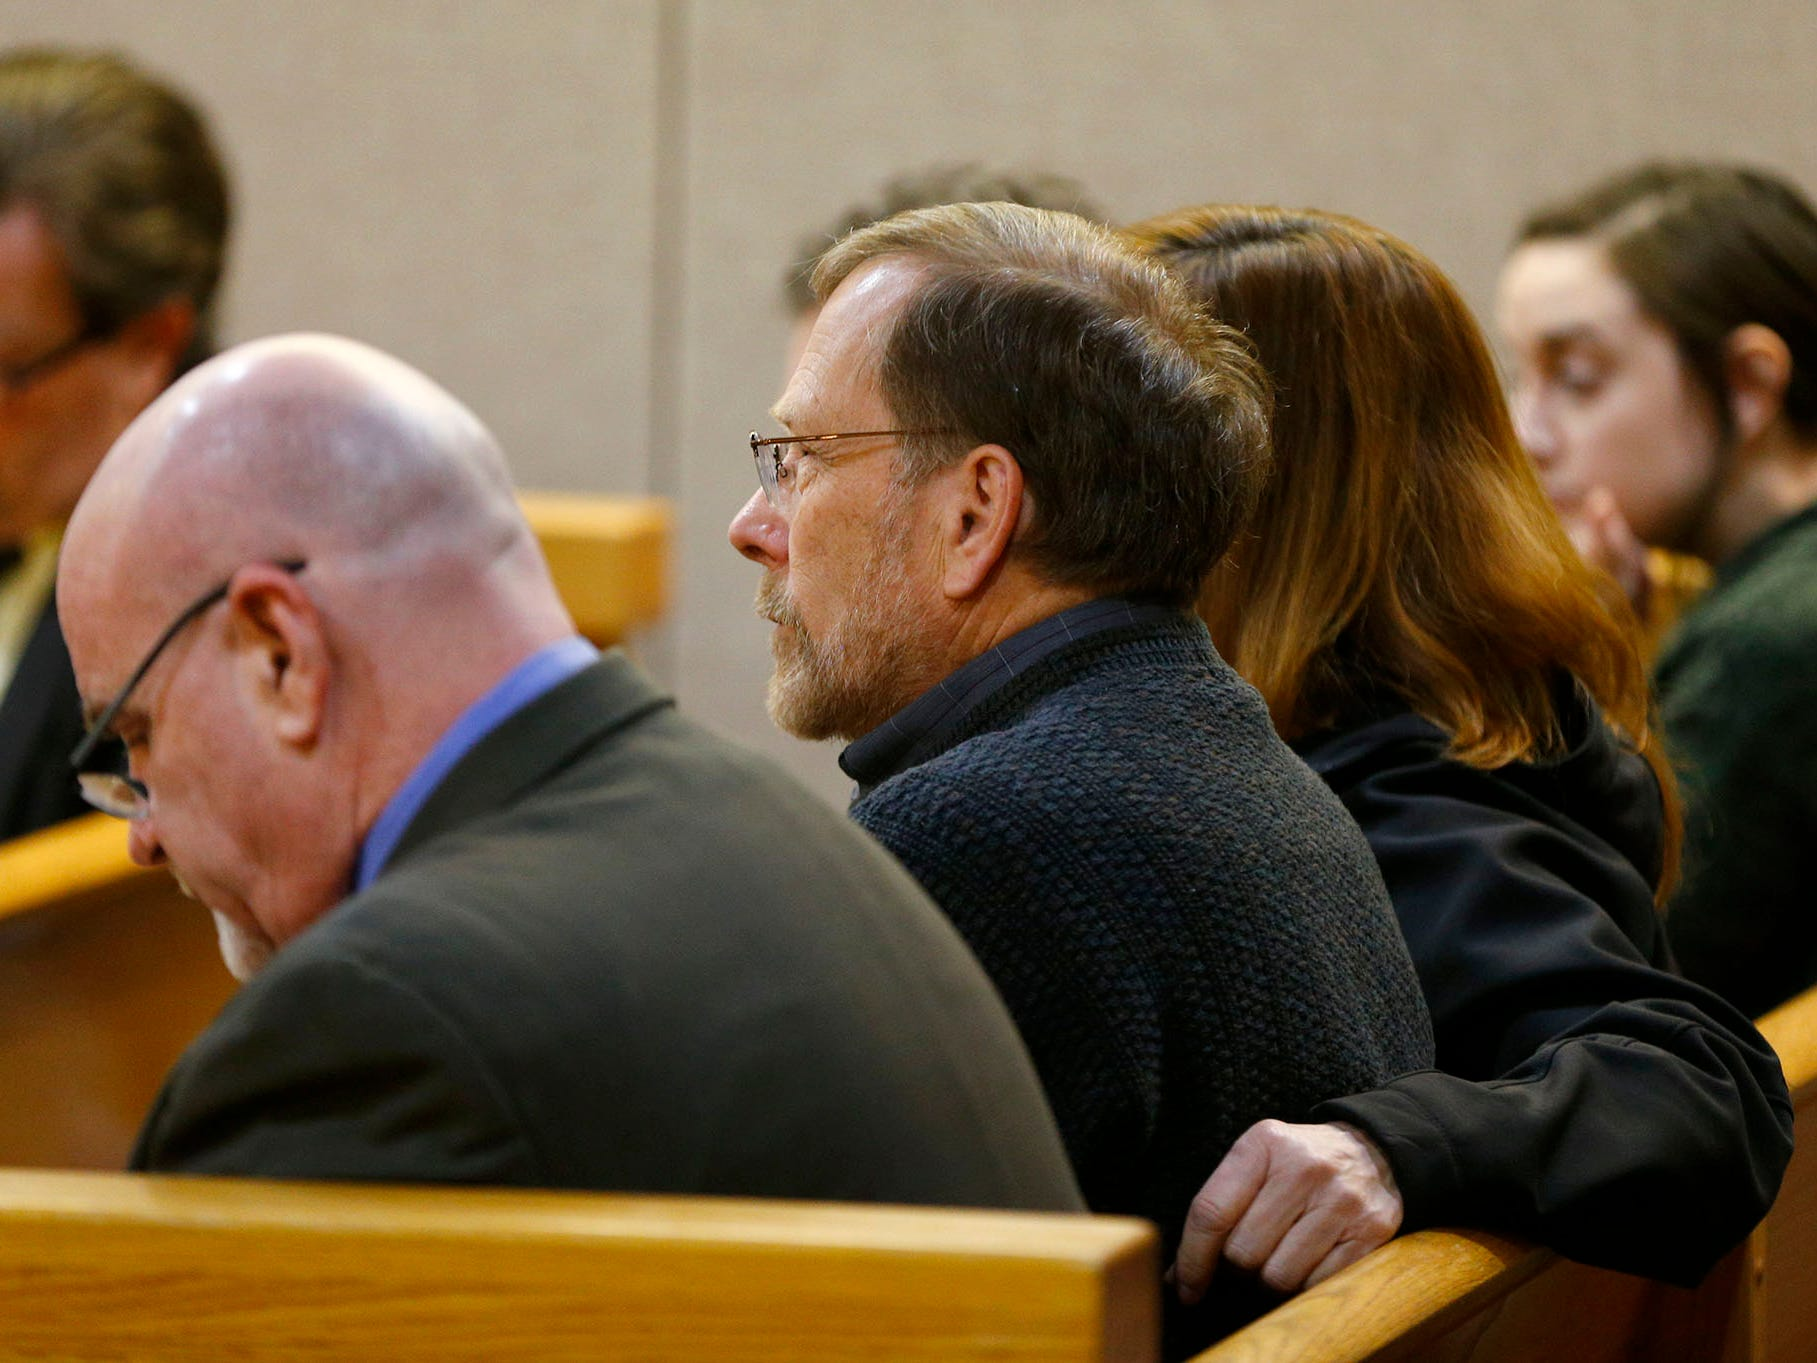 Sarah Stern's father Michael Stern listens in State Superior Court Judge Richard English's courtroom Thursday, February 21, 2019, as the trial continues for Liam McAtasney charged with her death in 2016.